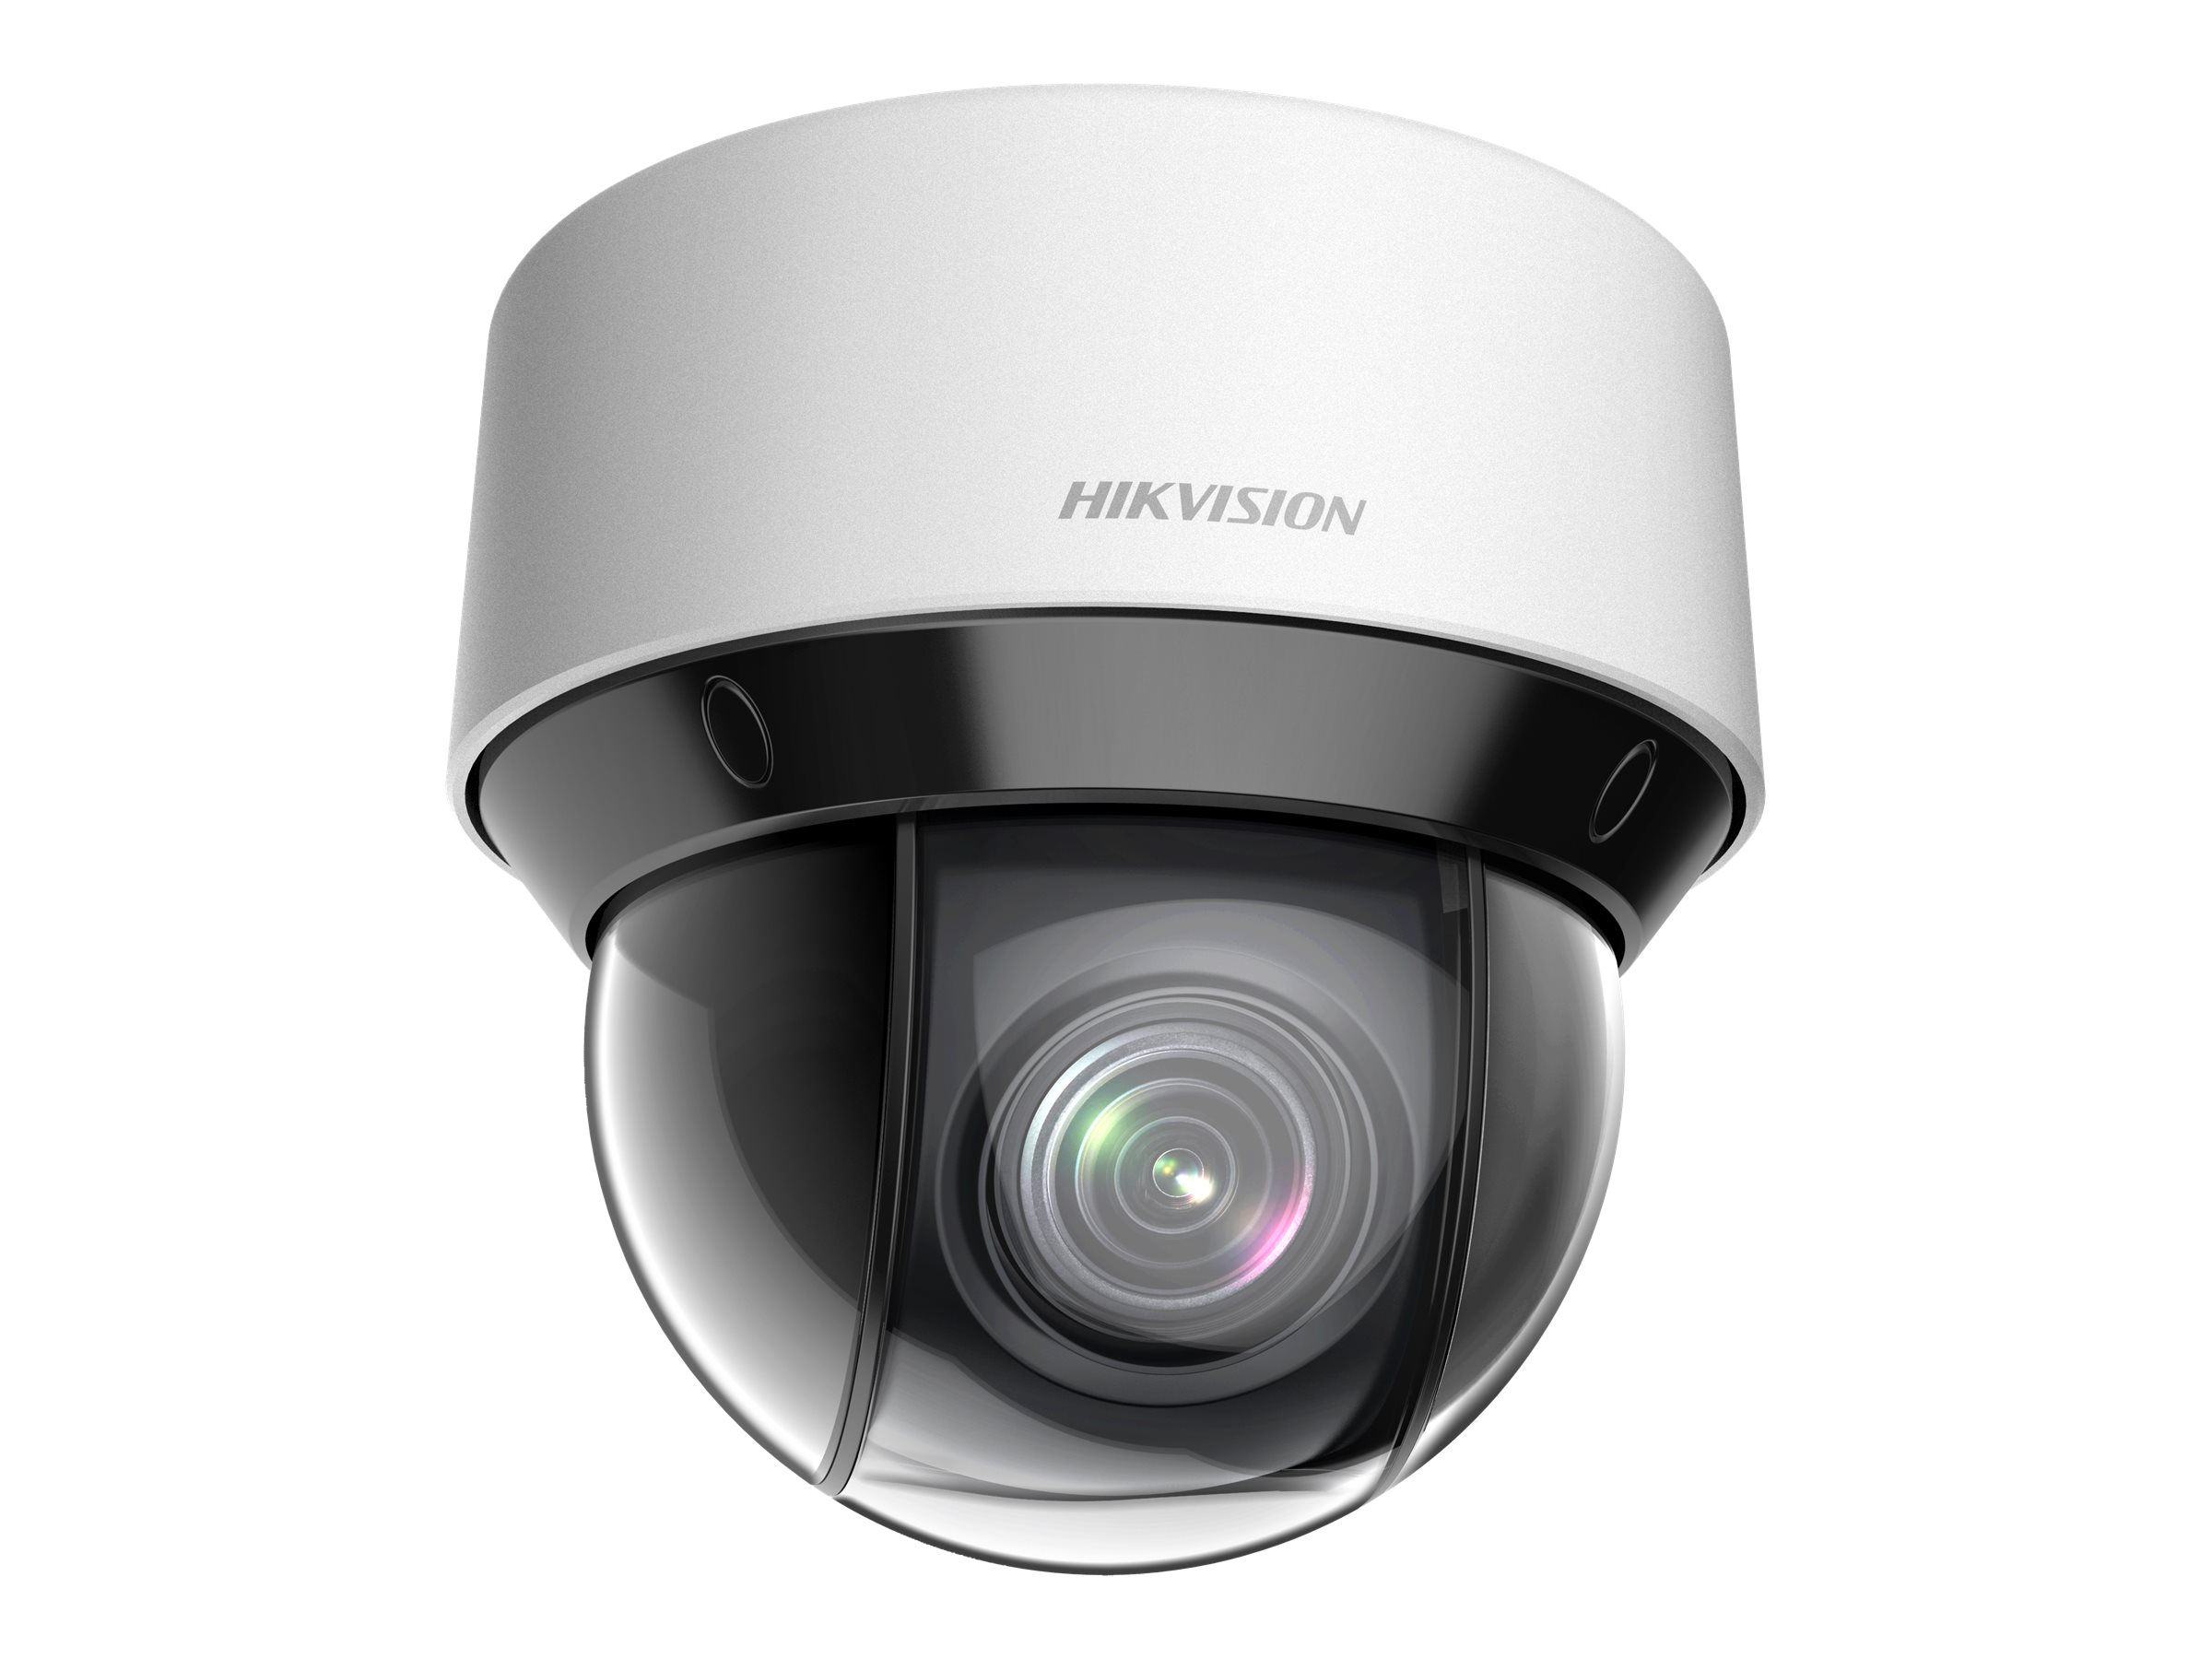 Hikvision DS-2DE4A225IW-DE - network surveillance camera